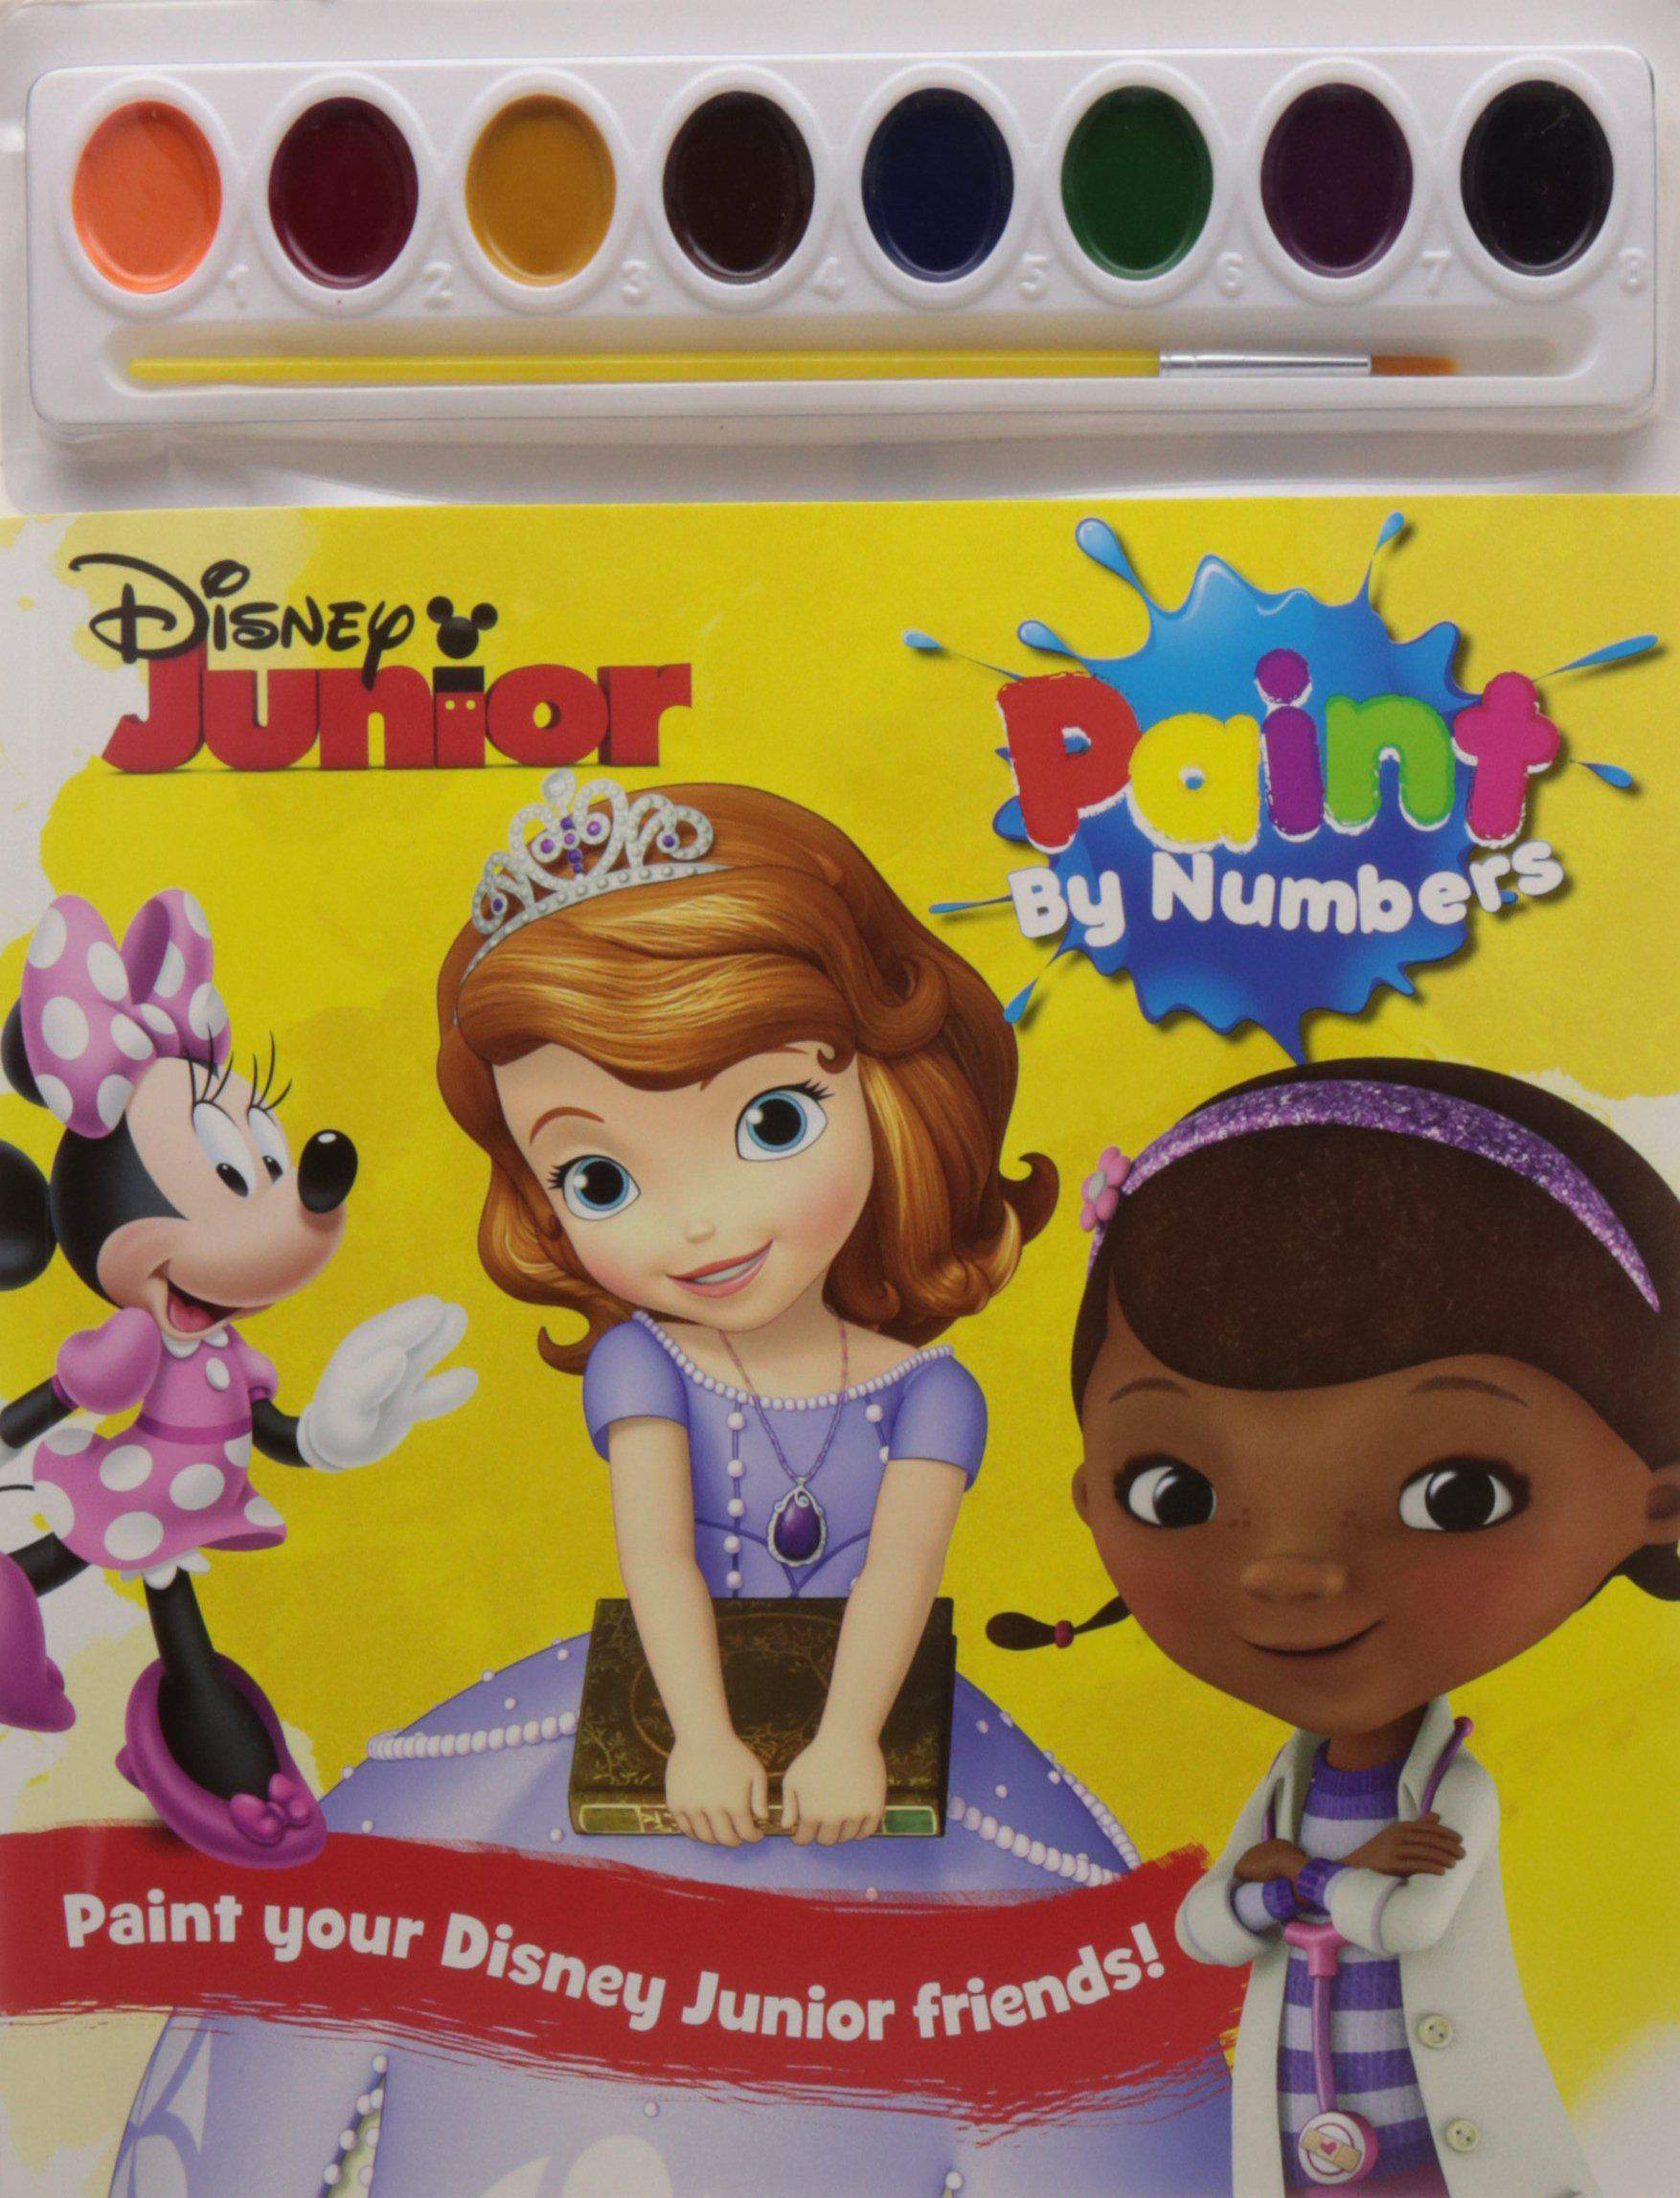 Disney Junior Paint by Numbers -